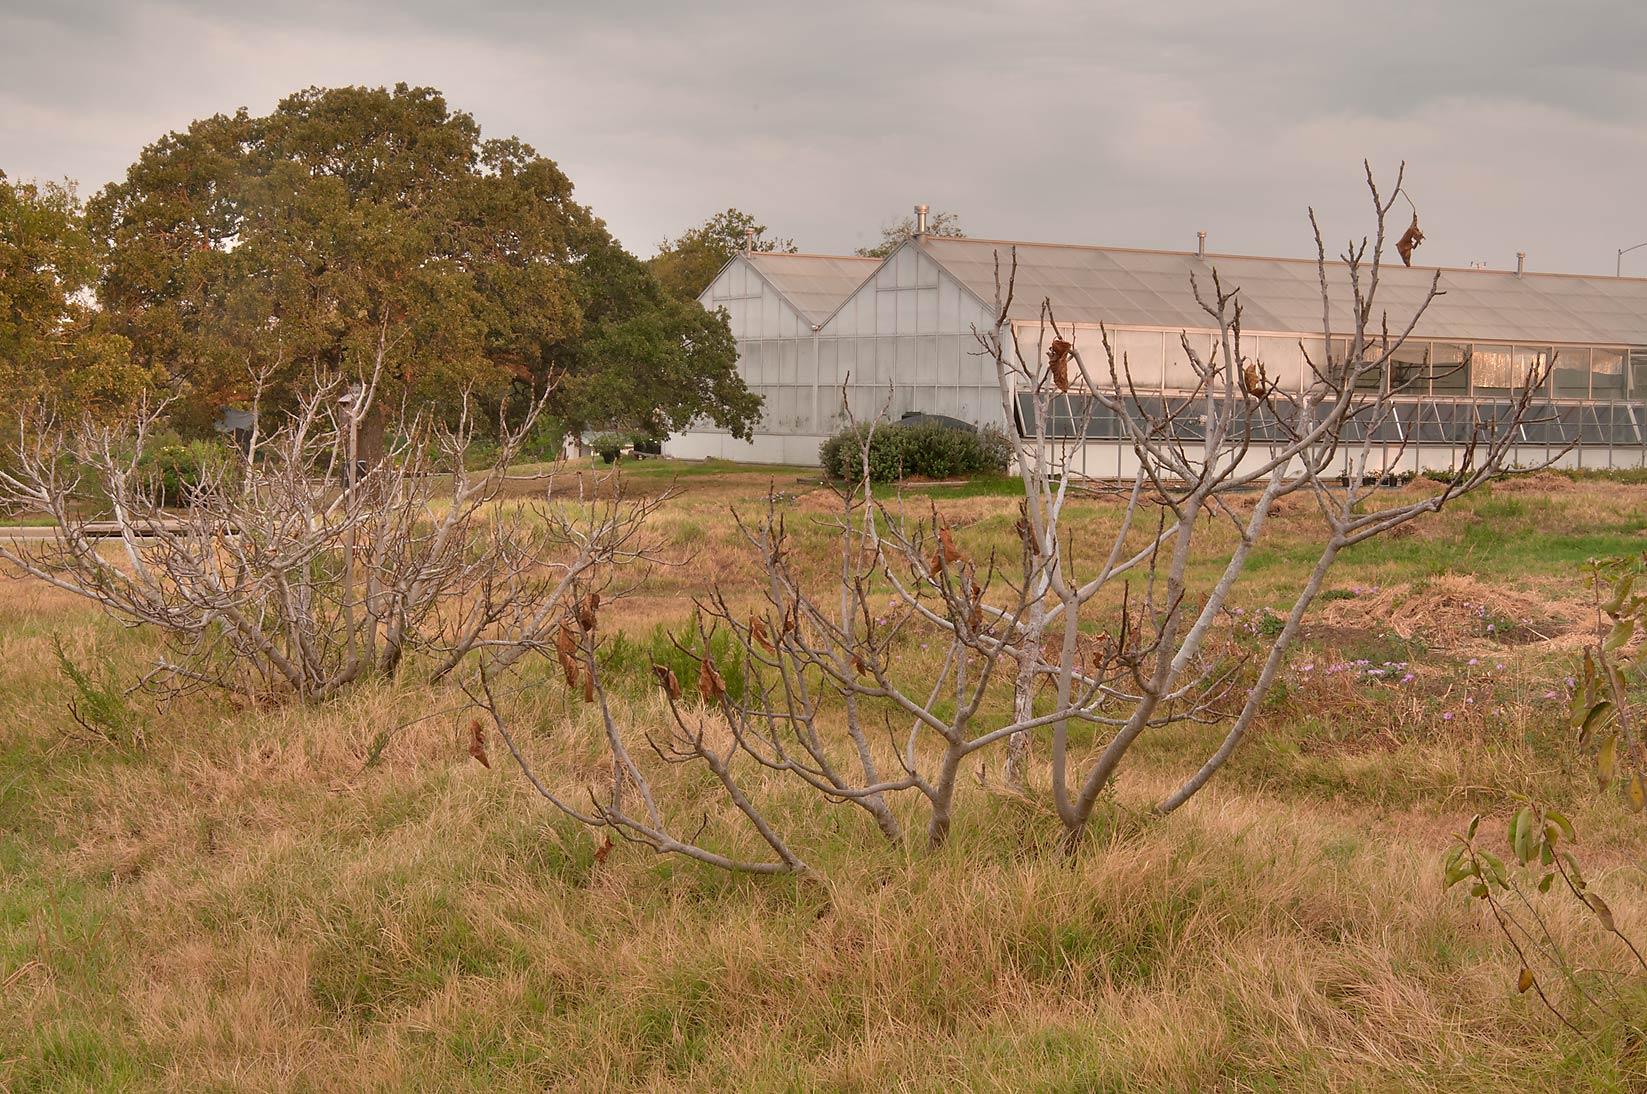 Fruit Orchard with skeletons of fig trees in TAMU...M University. College Station, Texas